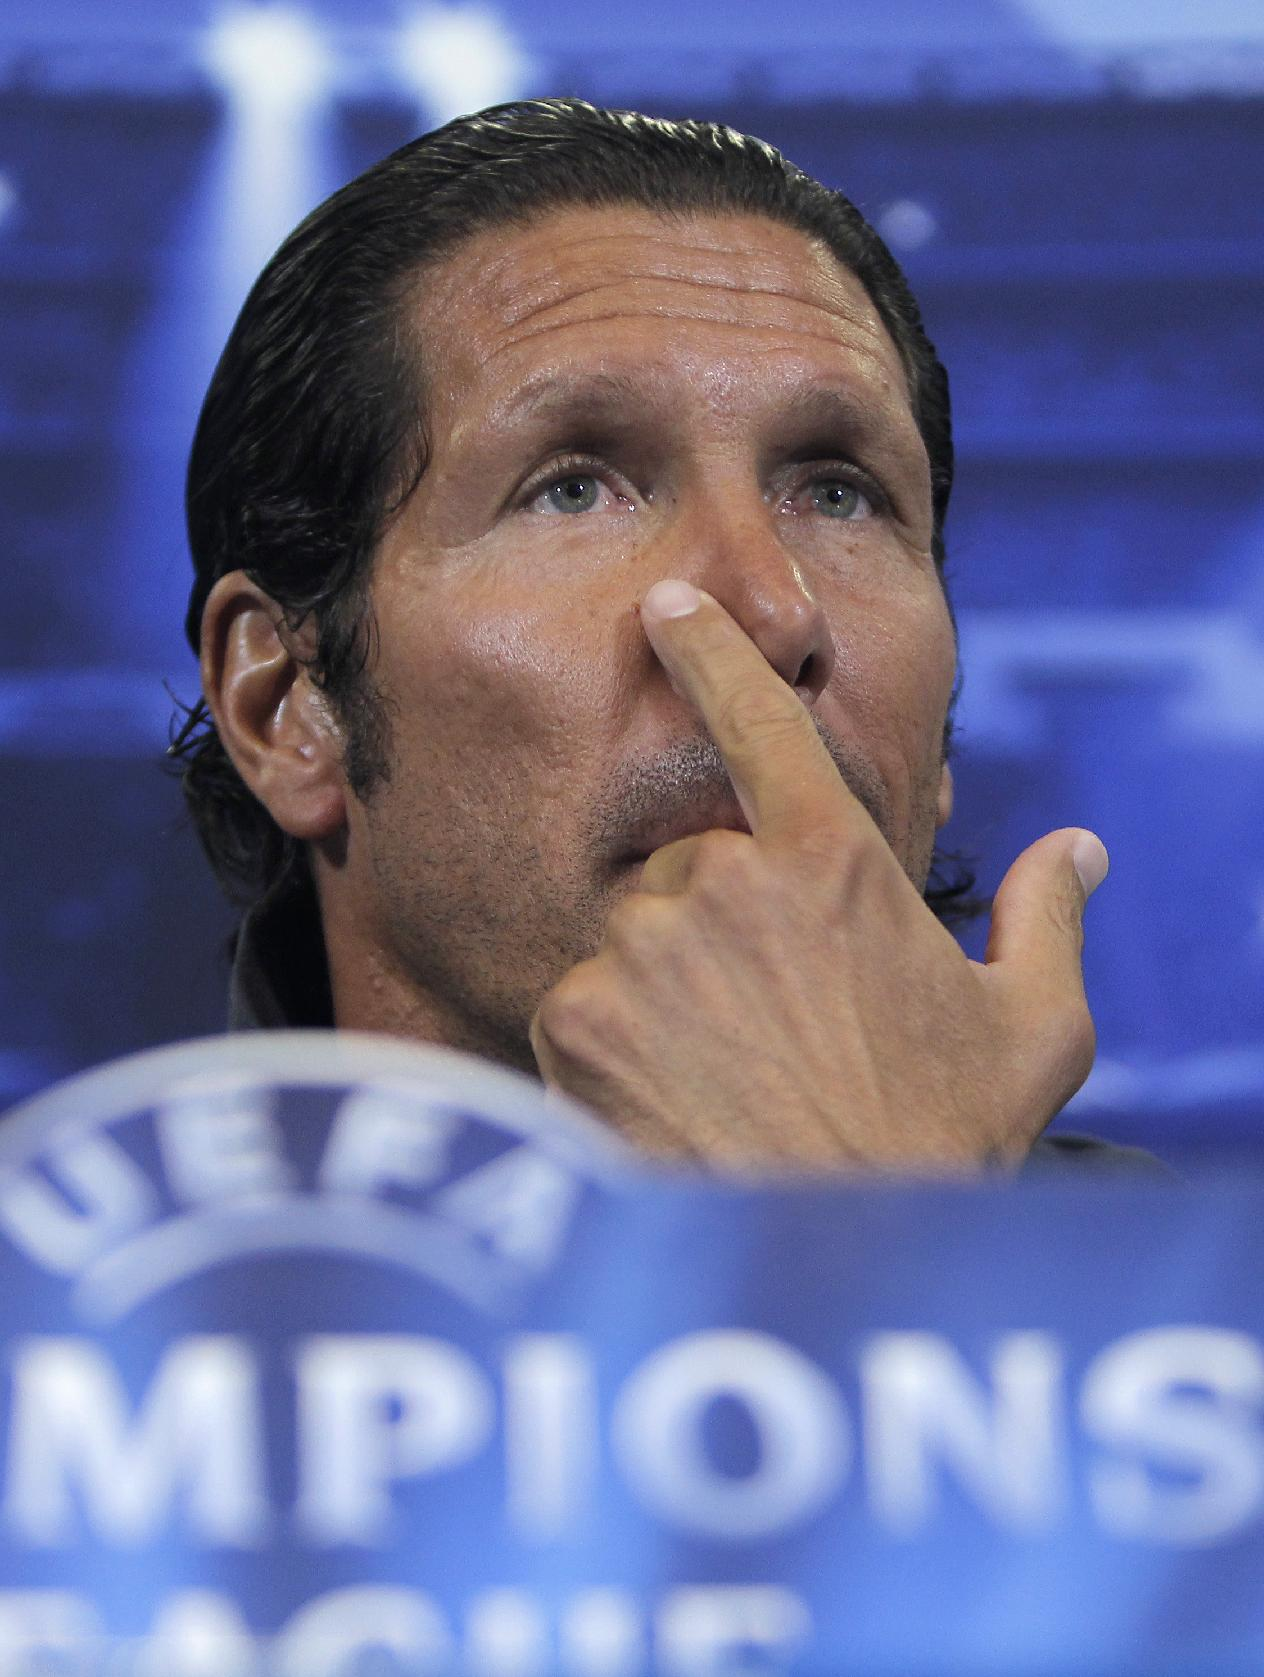 Atletico de Madrid's coach Diego Simeone puts his hand to his face during a press conference prior the Champions League Group G soccer match between Atletico de Madrid and Zenit in Madrid, Spain, Tuesday, Sept. 17, 2013. Atletico play Zenit in Wednesday